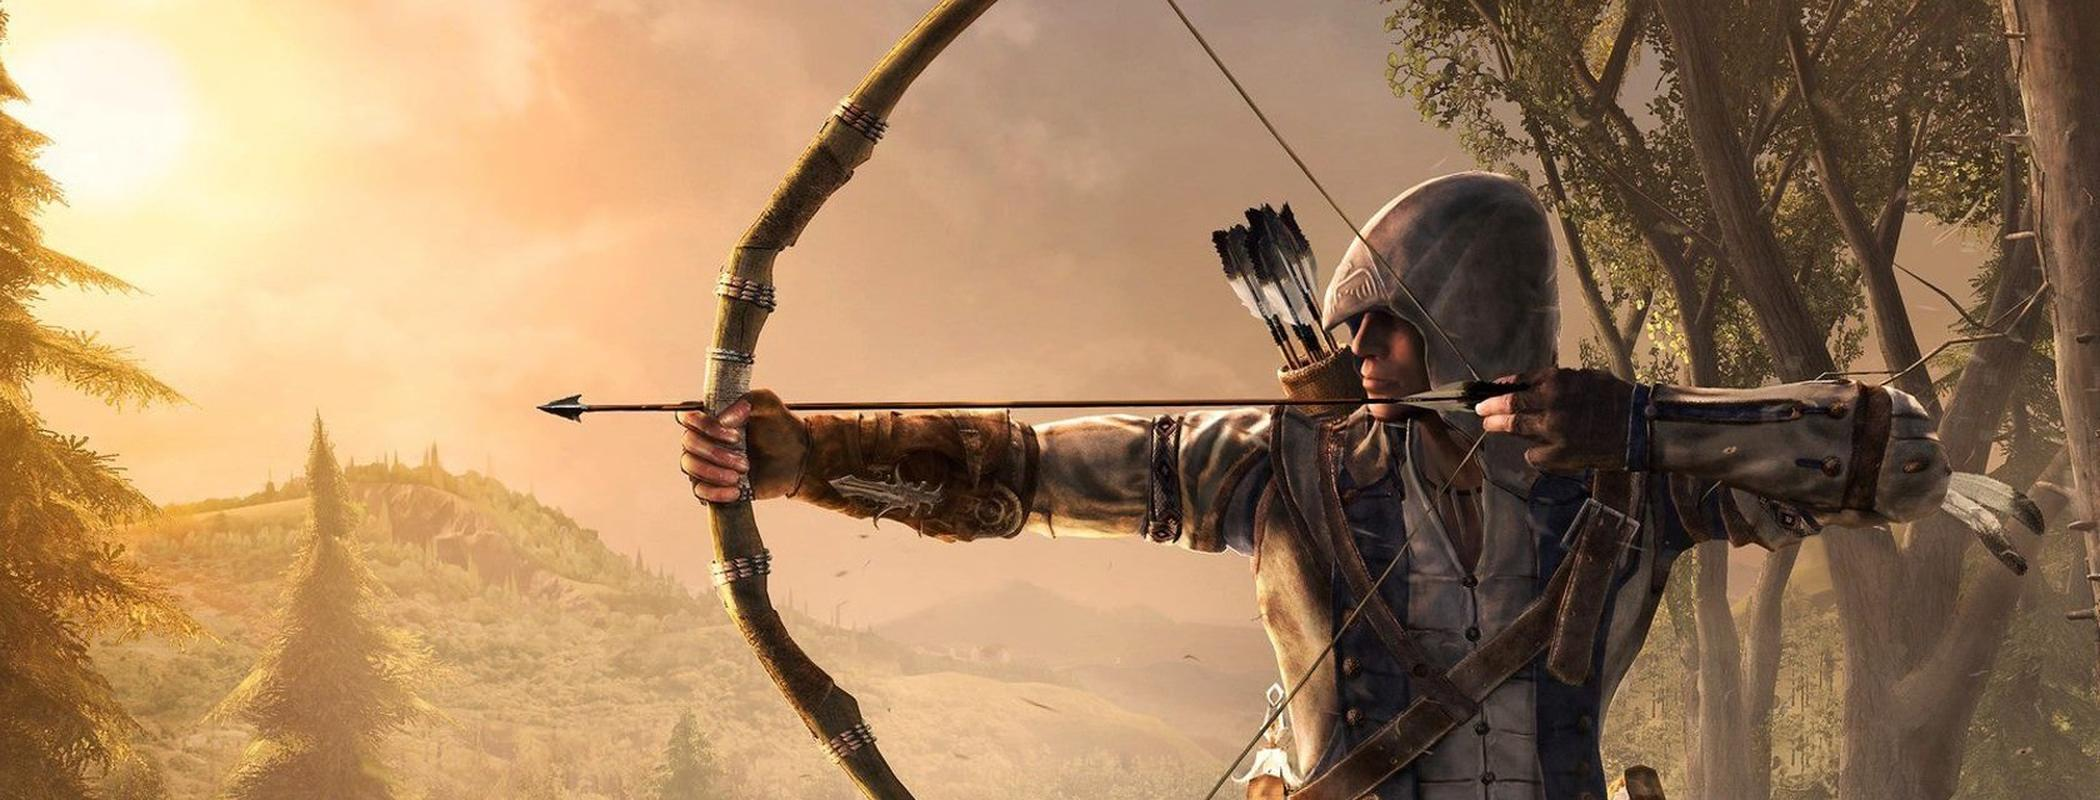 assassins creed 3 connor voice actor